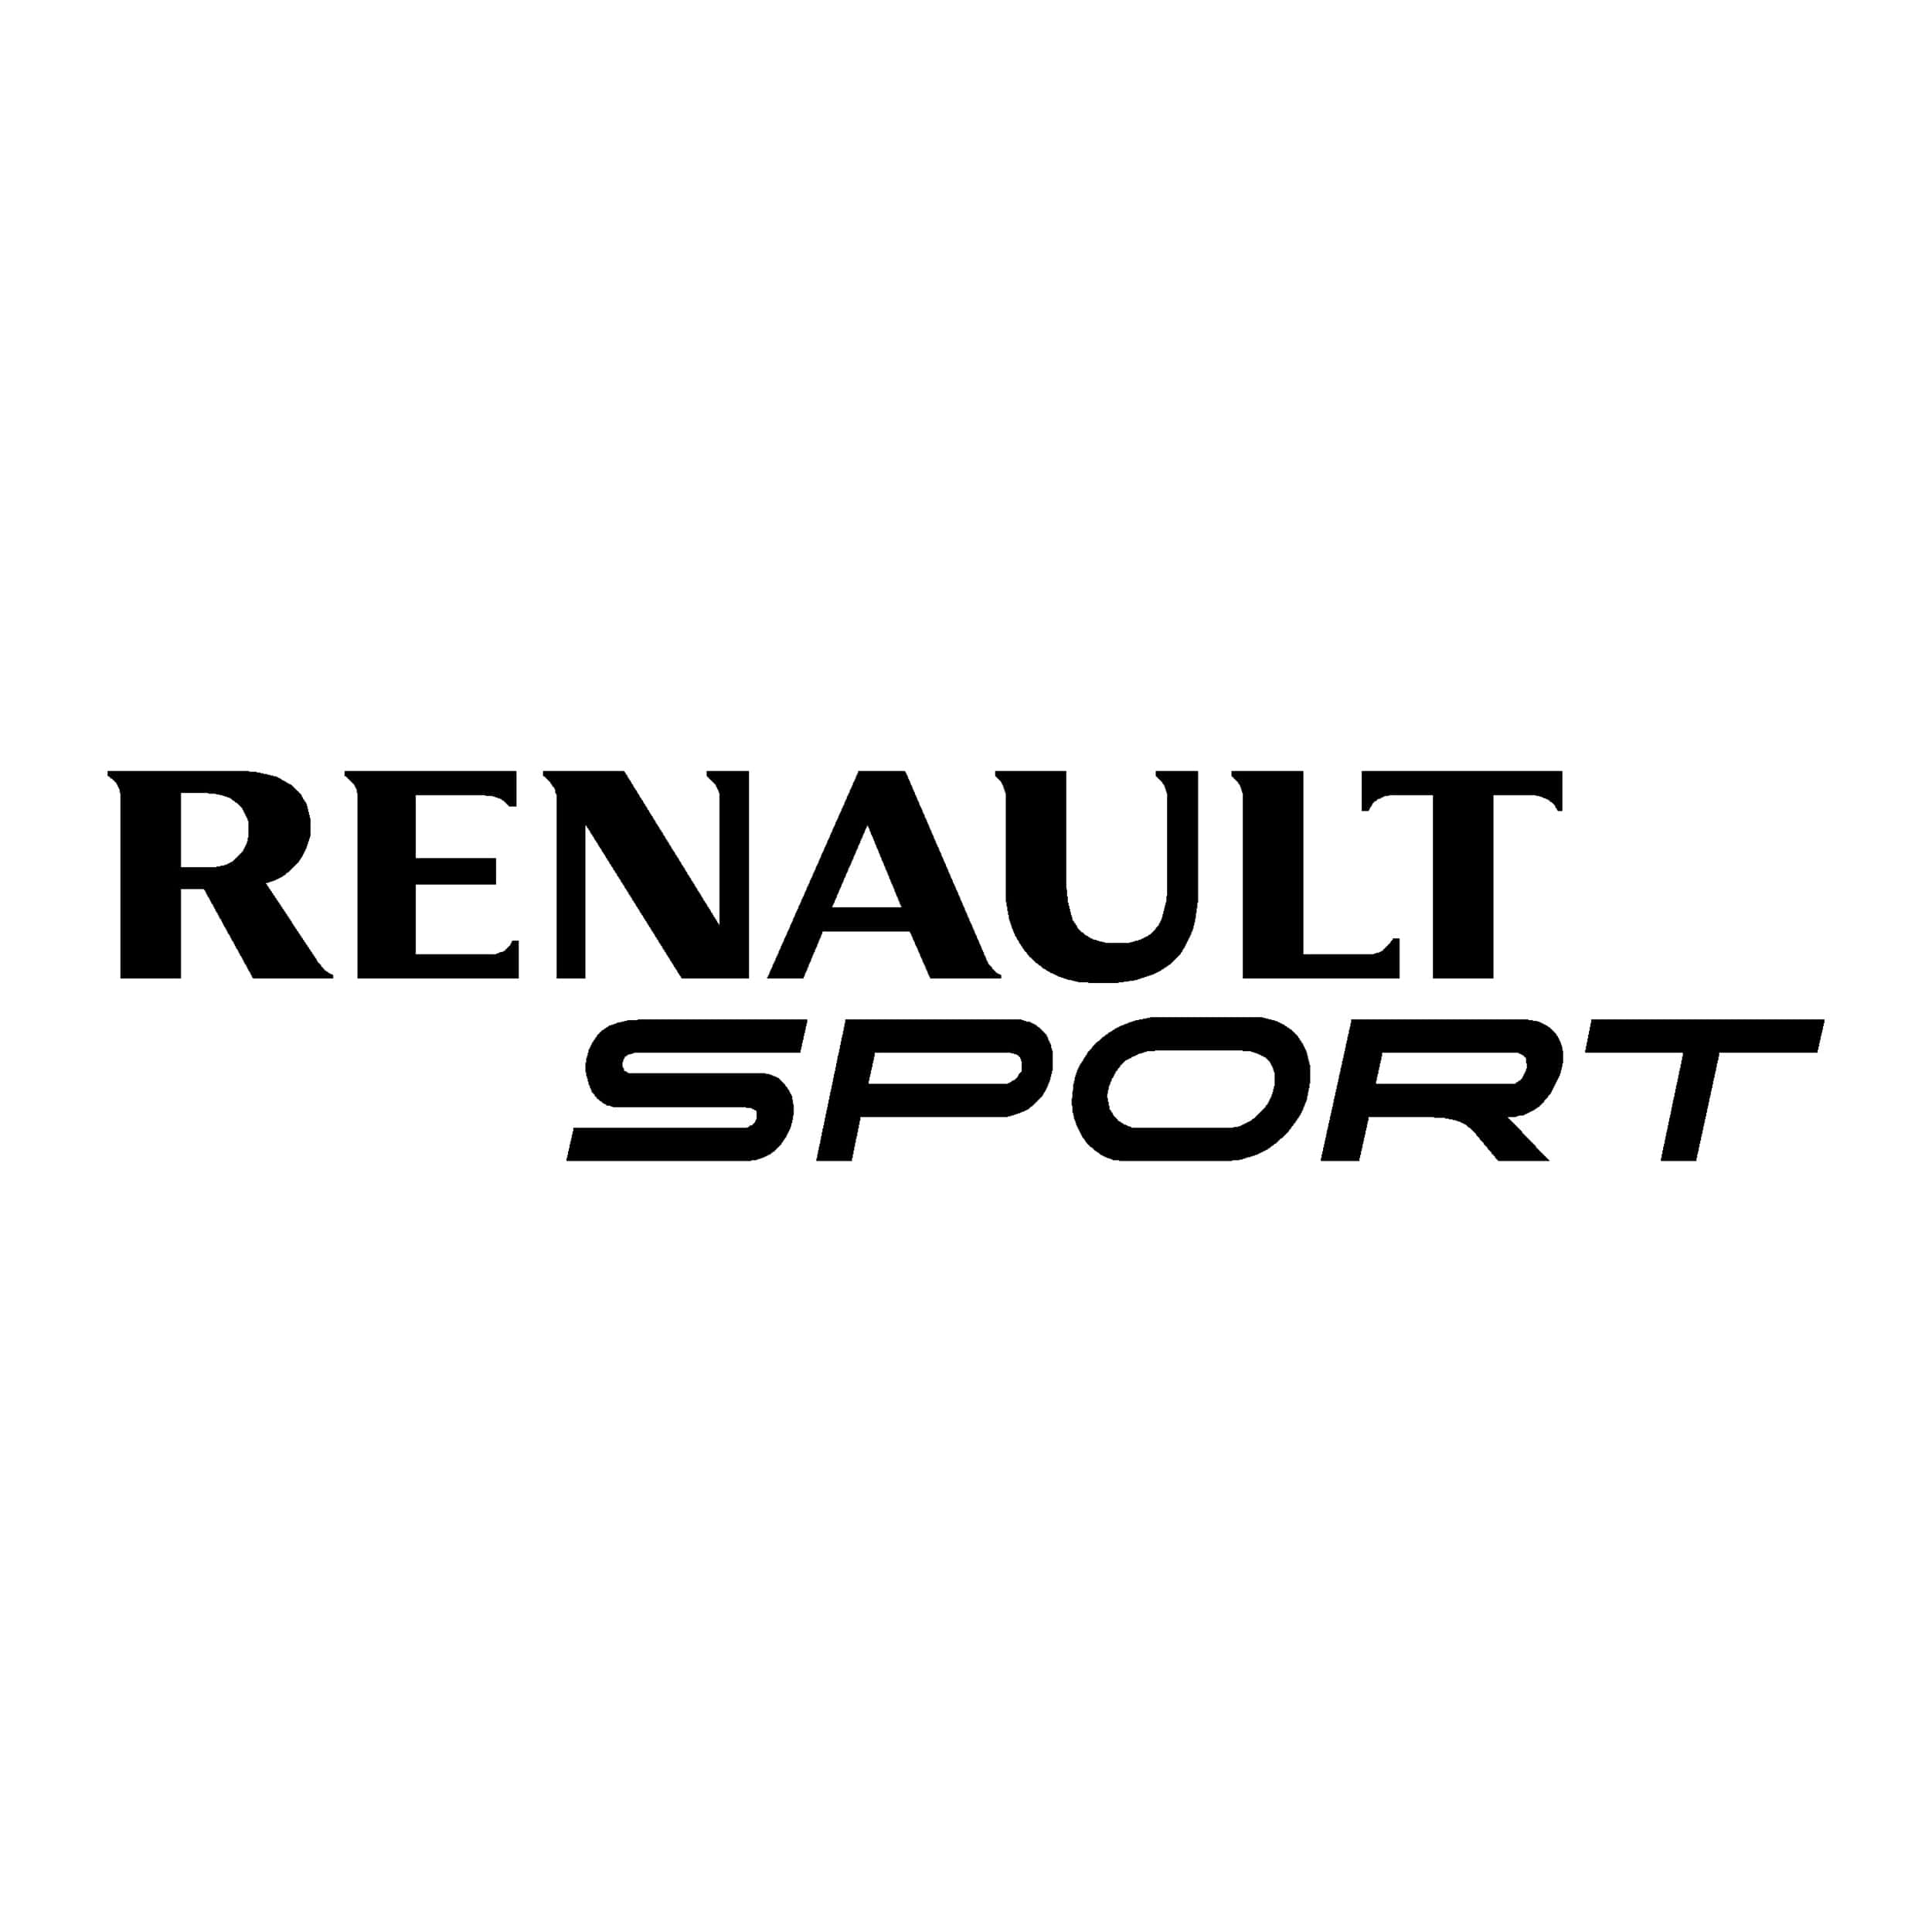 stickers-ref-3-renault-sport-voiture-tuning-competition-deco-adhesive-auto-racing-rallye-min